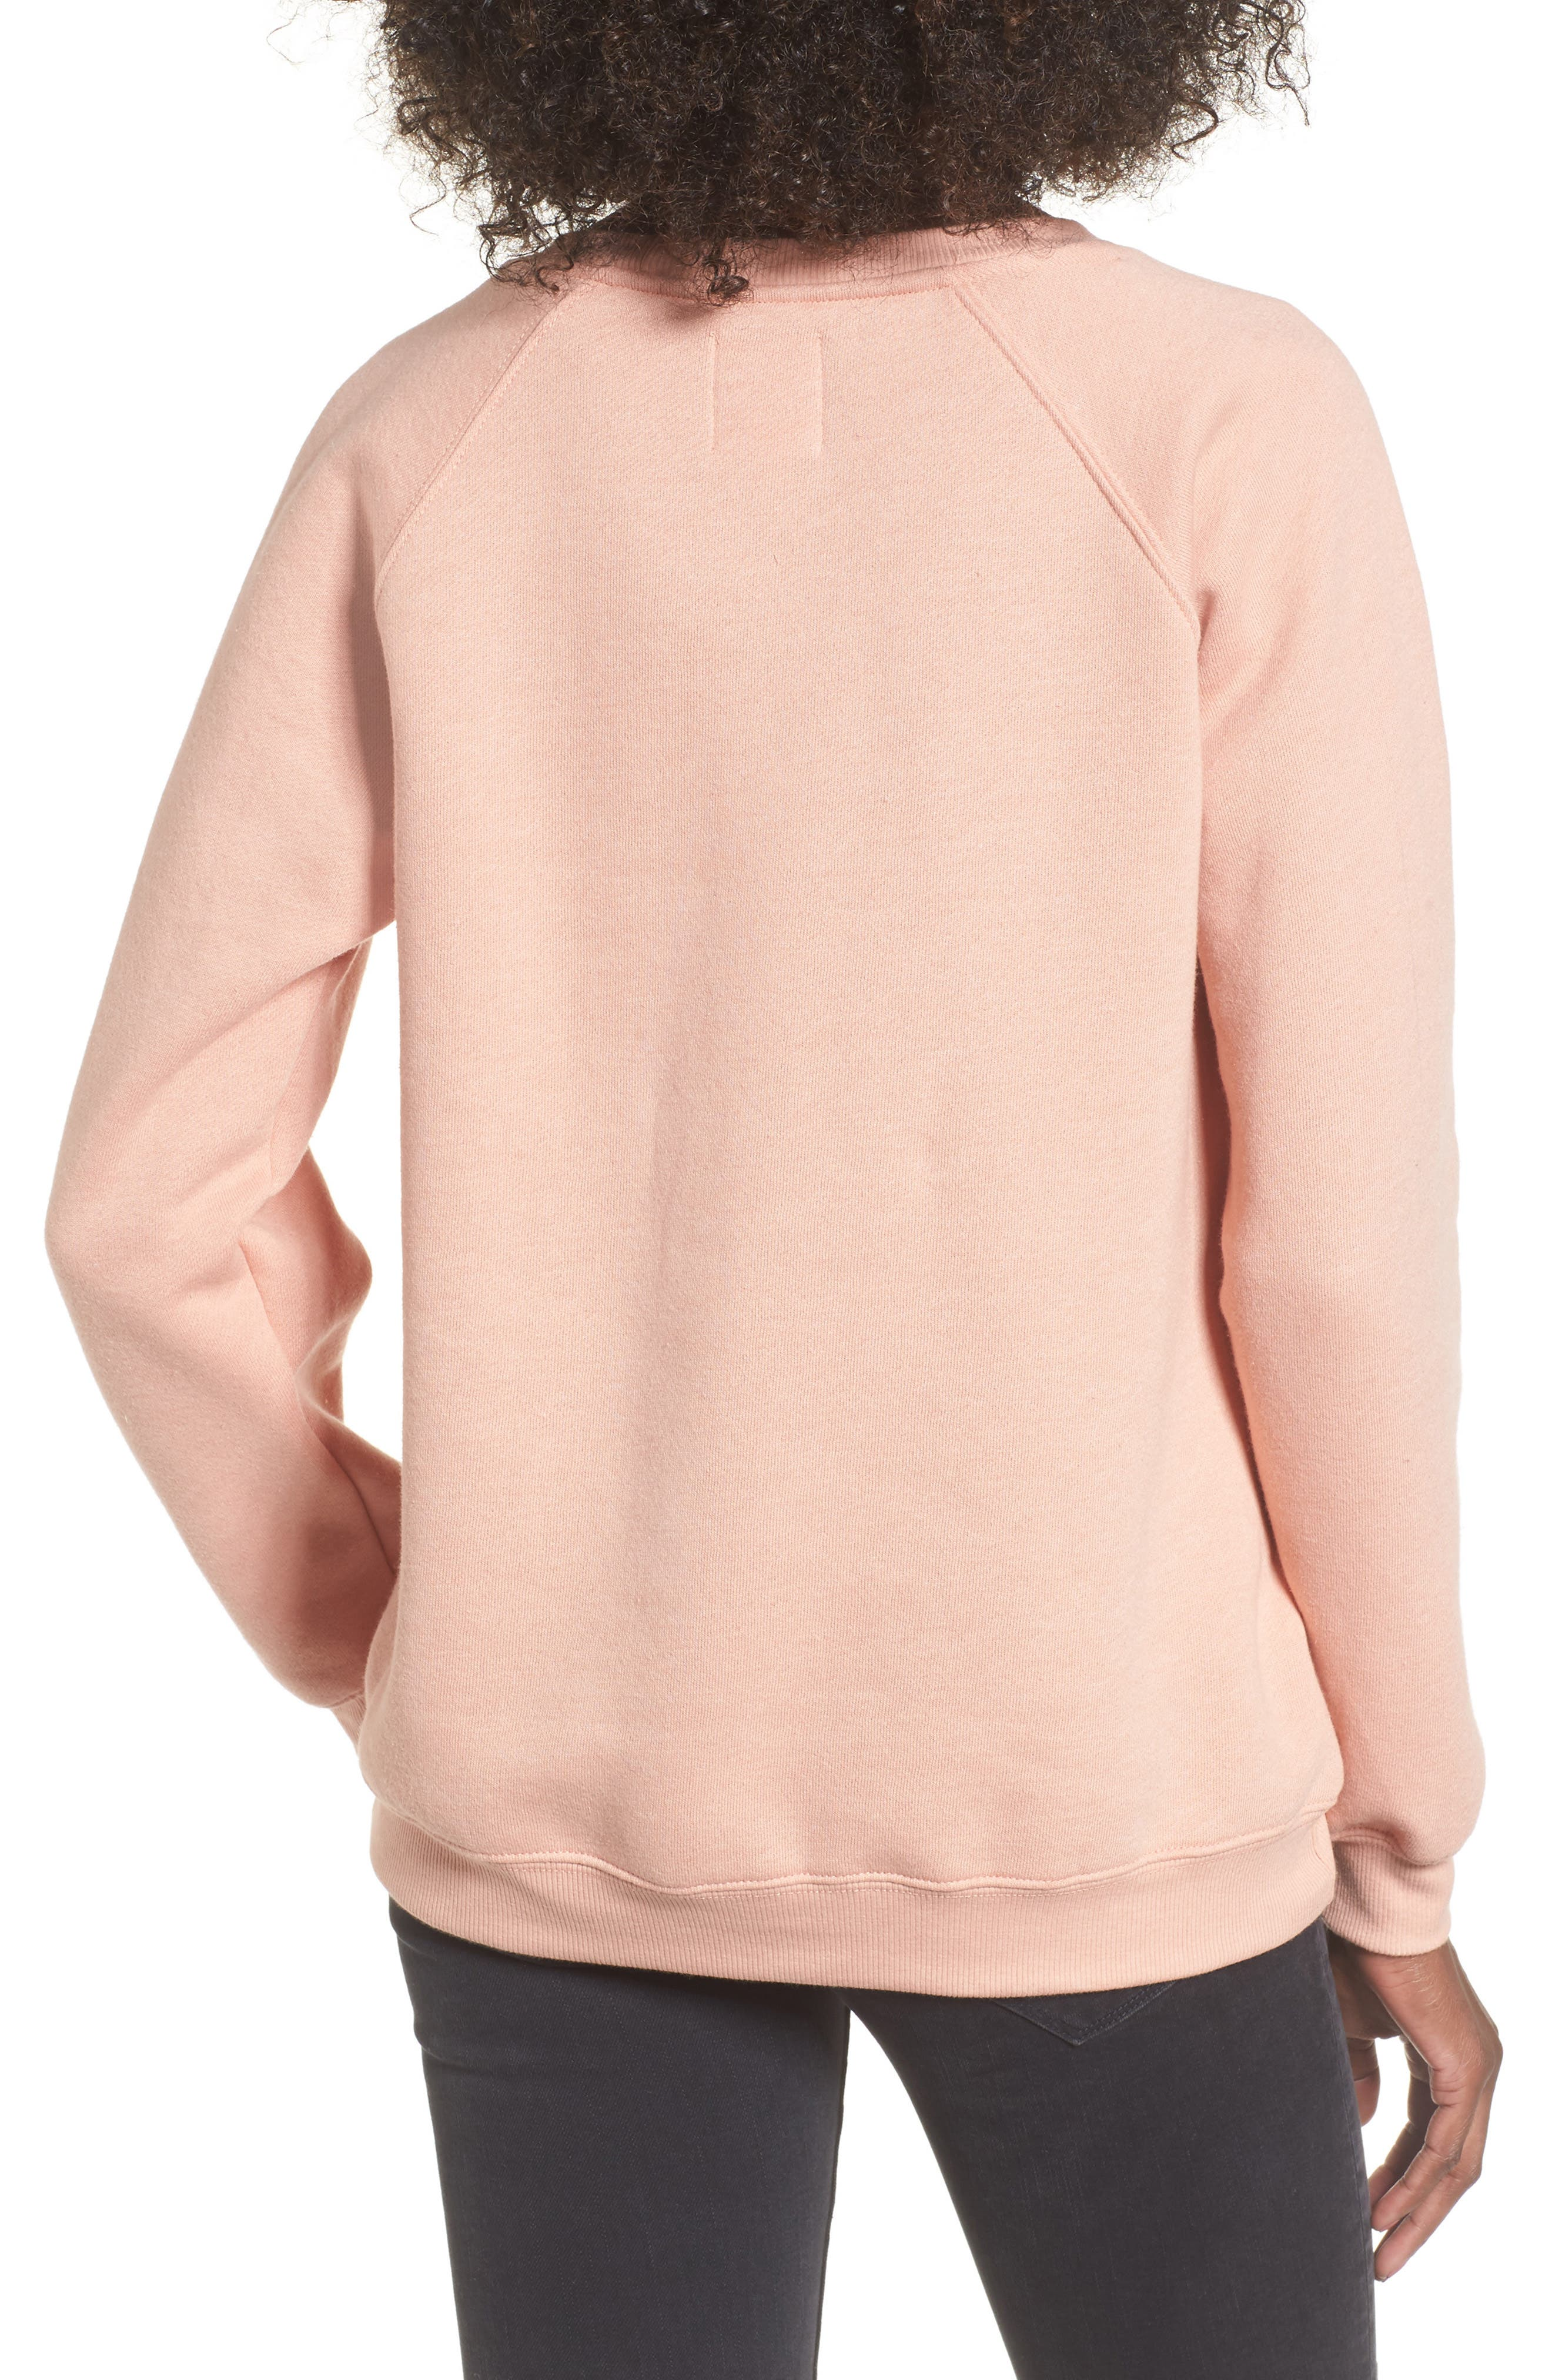 Cali Days Sweatshirt,                             Alternate thumbnail 2, color,                             Pearl Pink